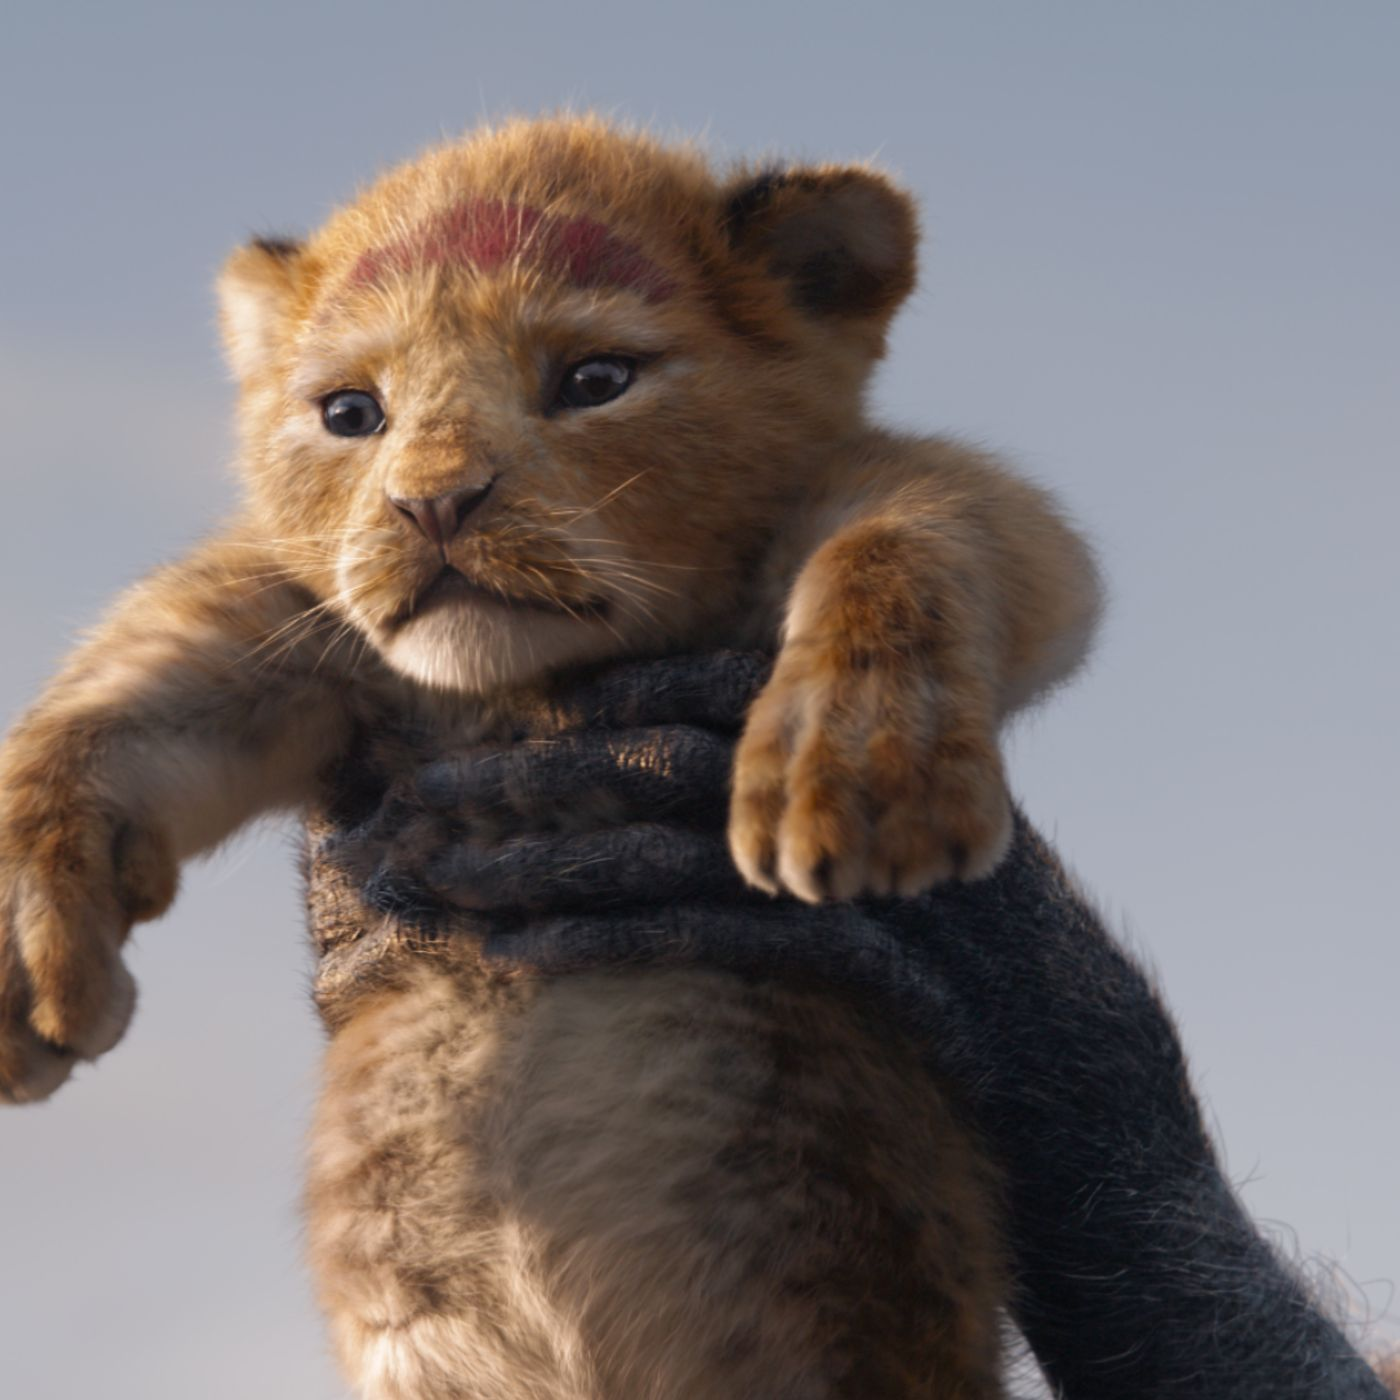 Kinderfilm: The Lion King